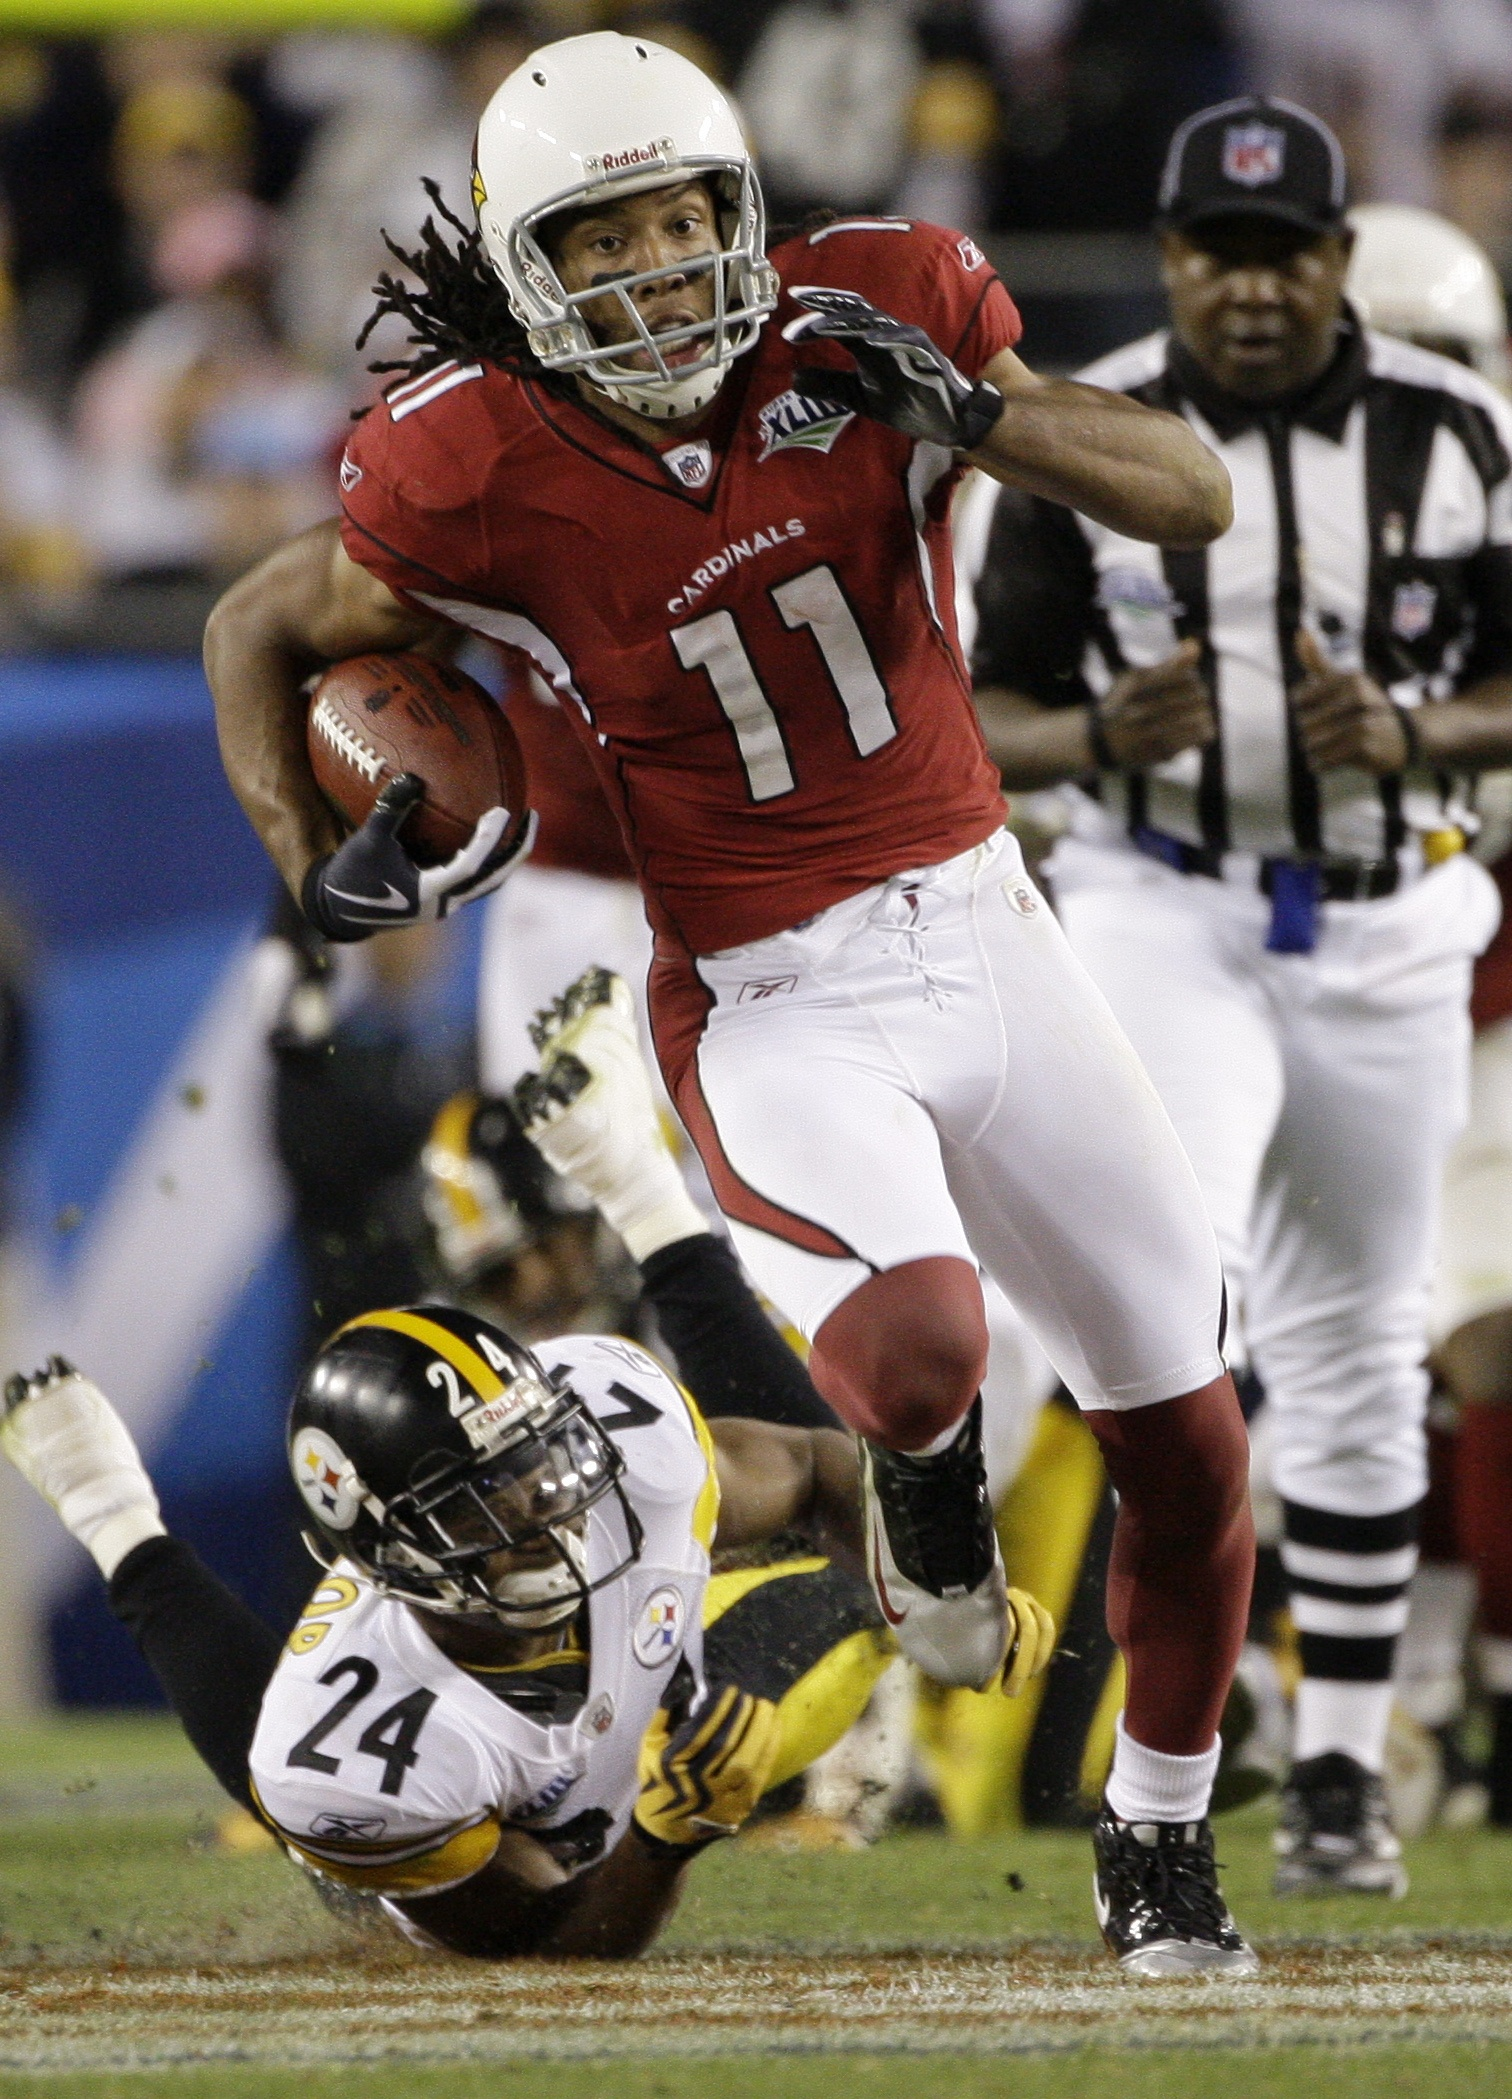 FILE - In this Feb. 1, 2009, file photo, Arizona Cardinals wide receiver Larry Fitzgerald (11) runs past Pittsburgh Steelers cornerback Ike Taylor (24) for a 64-yard touchdown reception during the fourth quarter of the NFL Super Bowl XLIII football game,